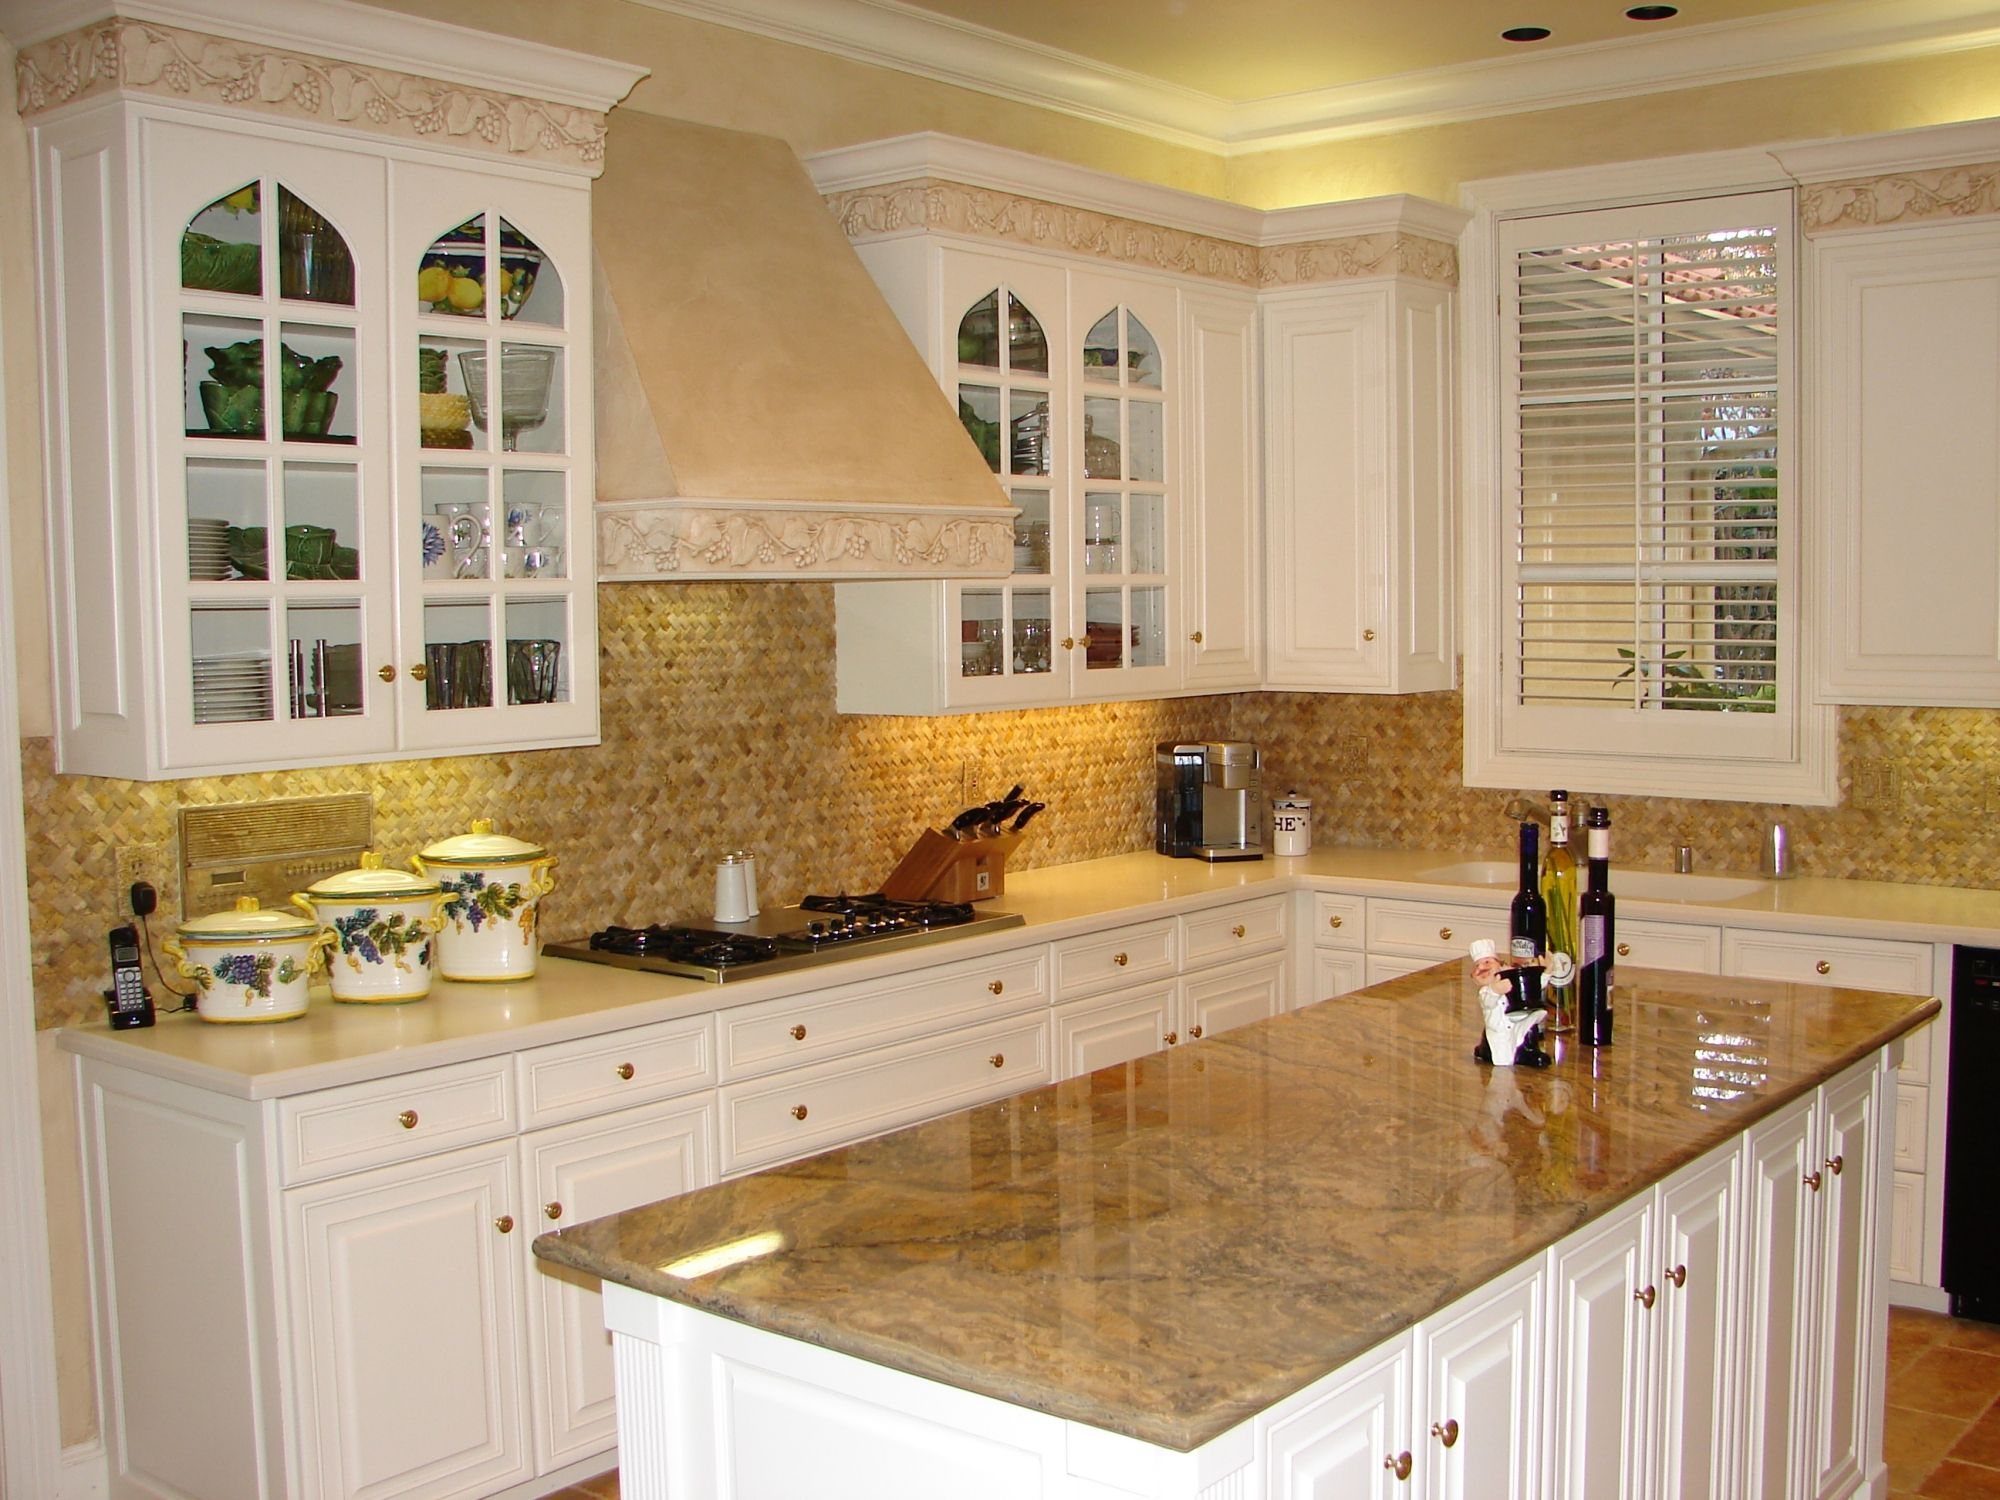 White Cabinets With Earth Tone Back Splash And Tan Granite Counterscultivate